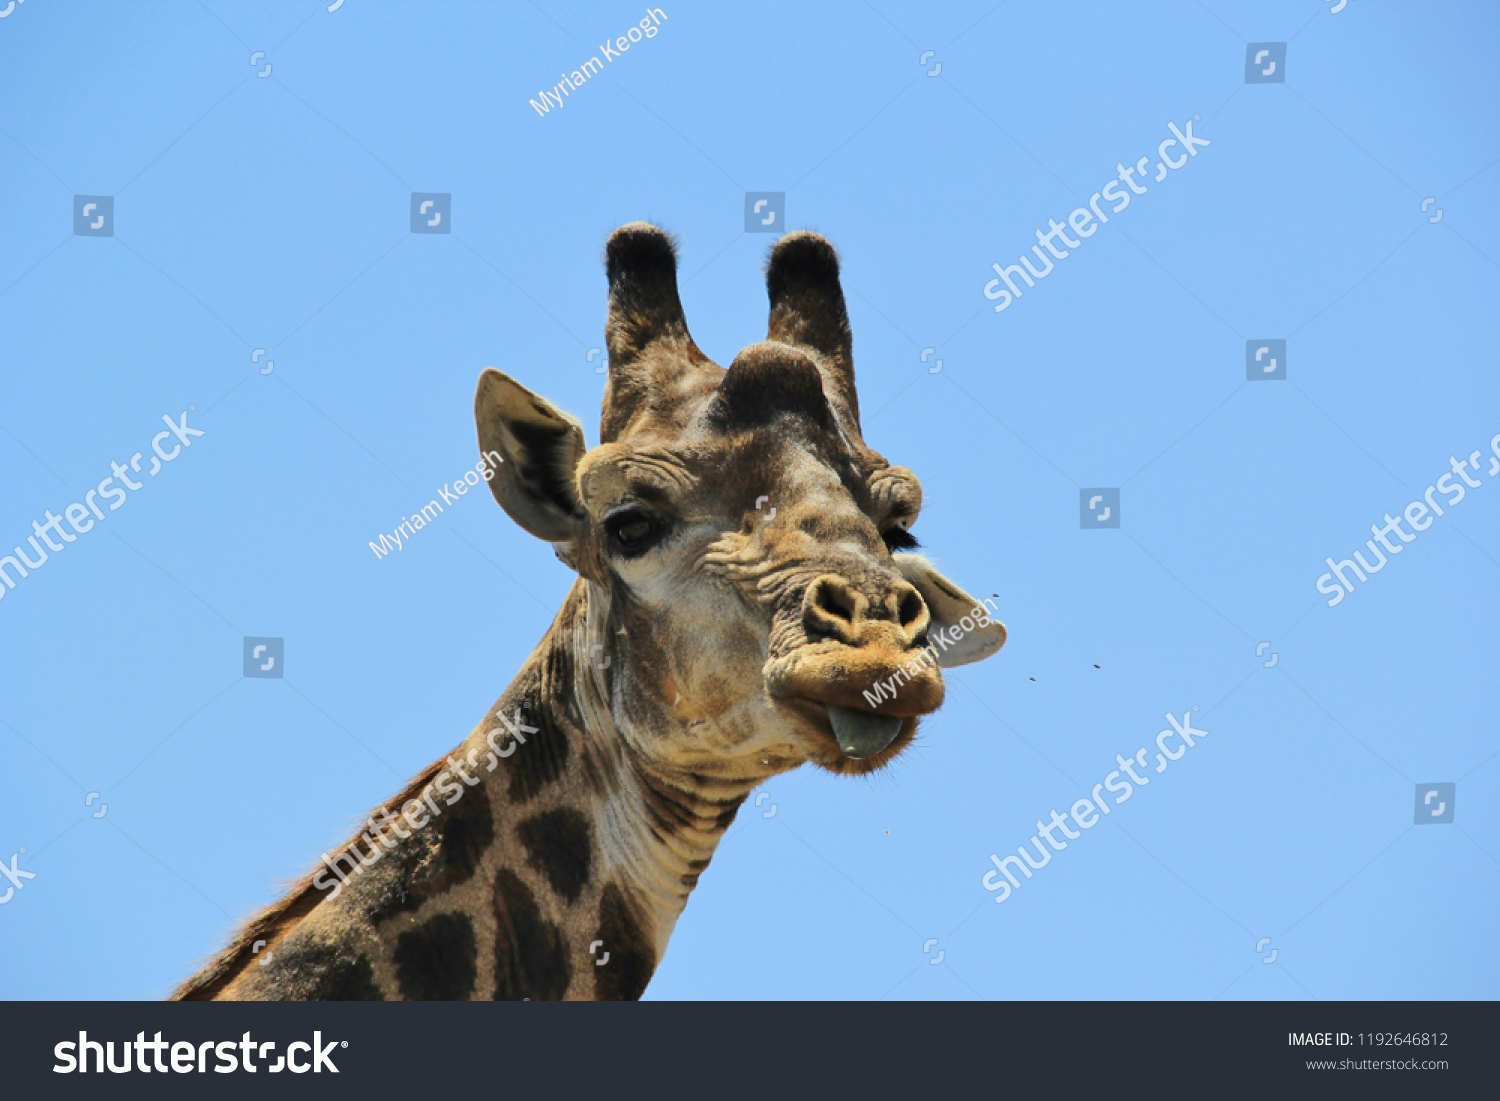 Frontal picture of the face of a giraffe with its tongue hanging out looking into the camera, Kruger Park, South Africa